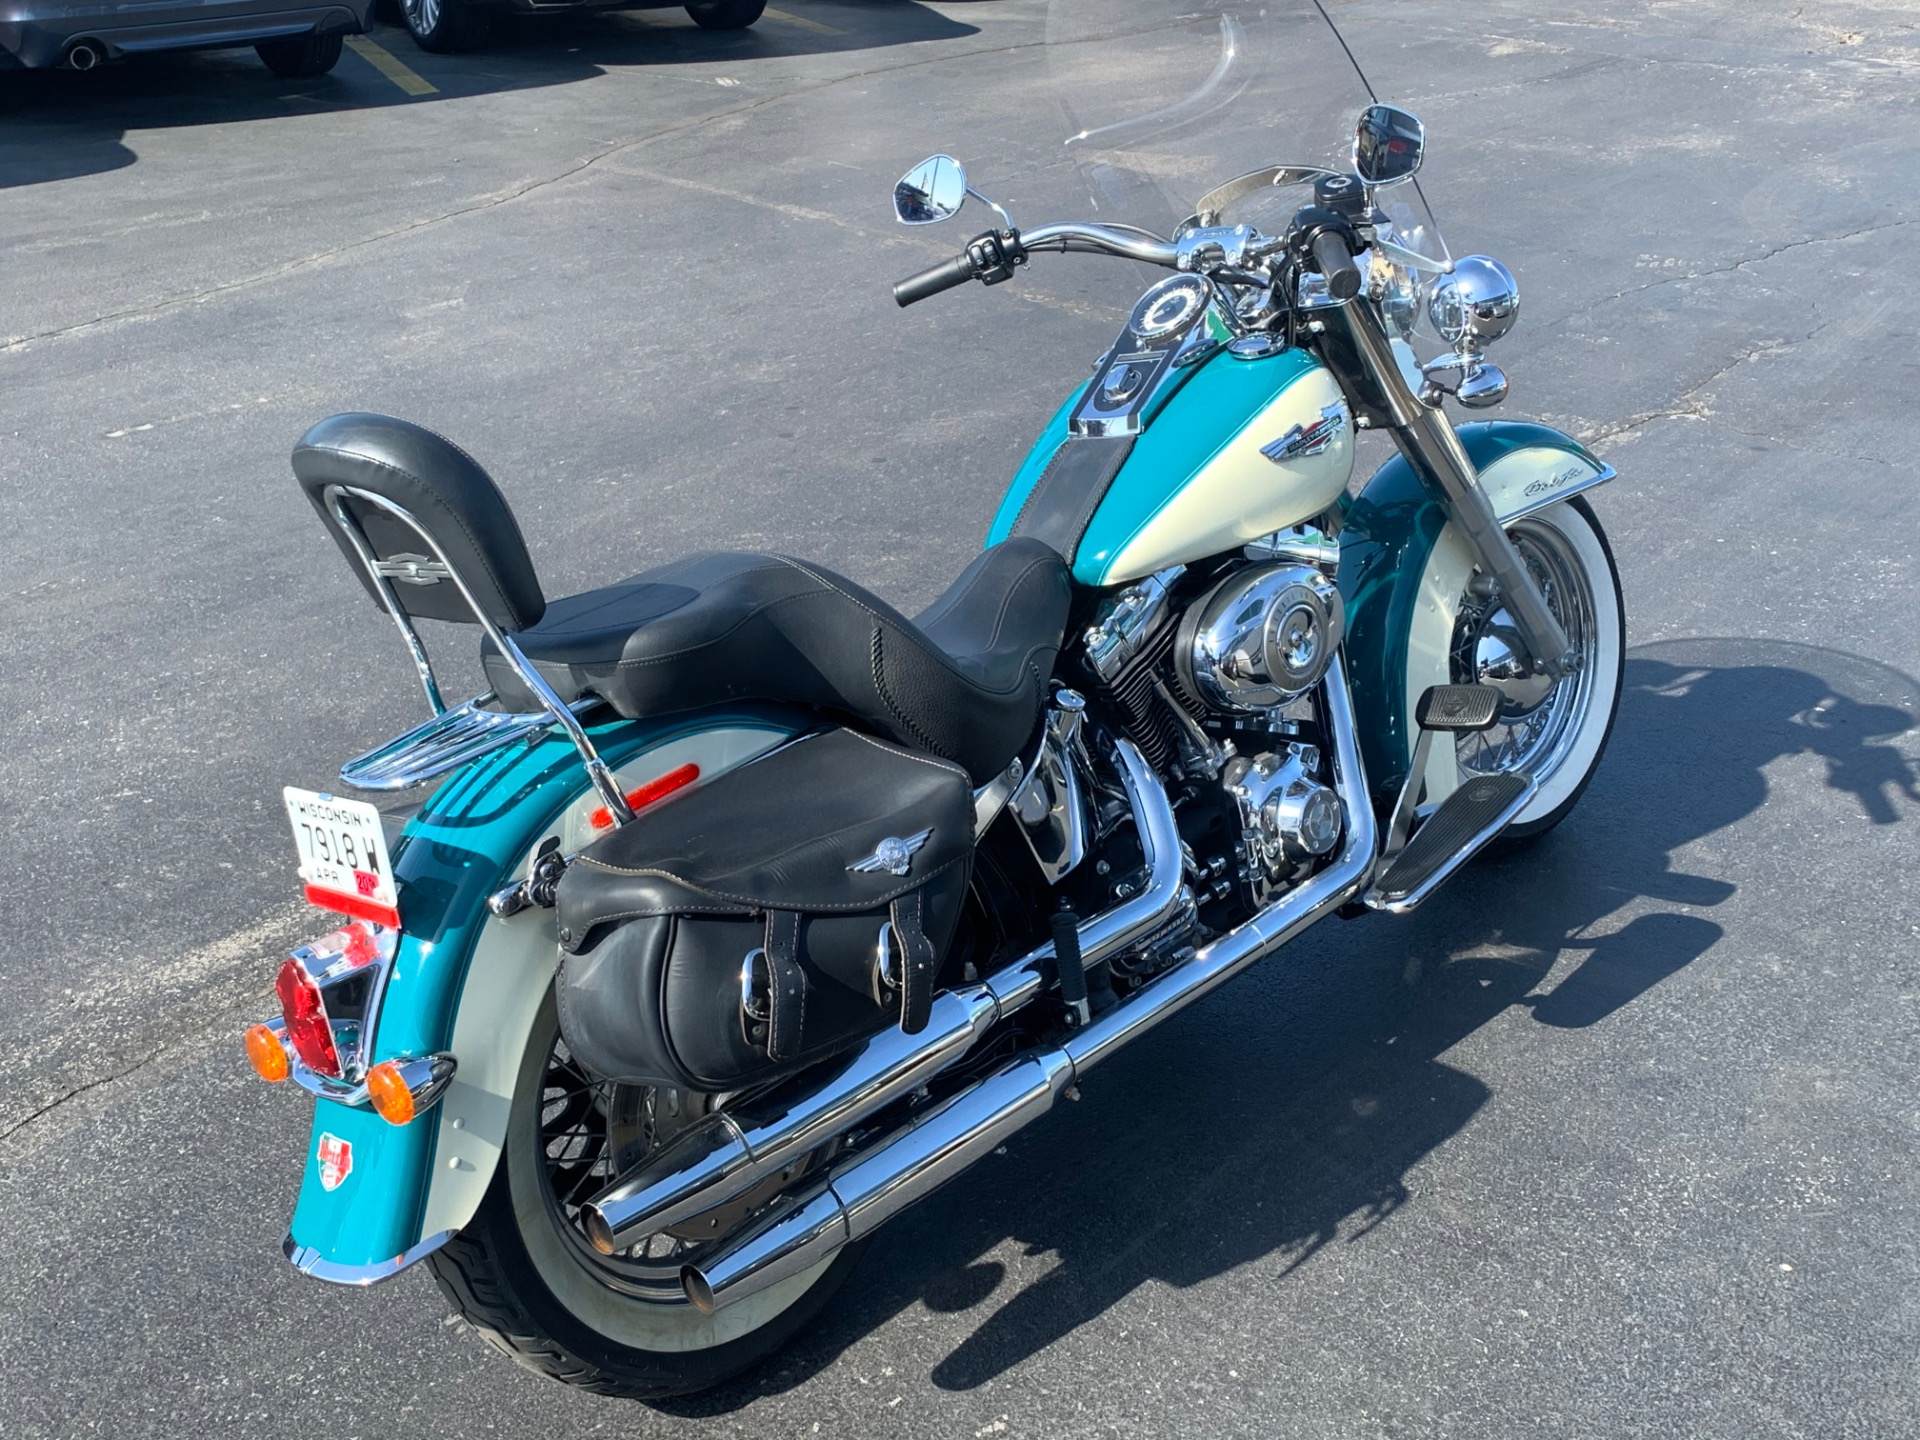 Used-2009-Harley-Davidson-Heritage-Softail-DeLuxe